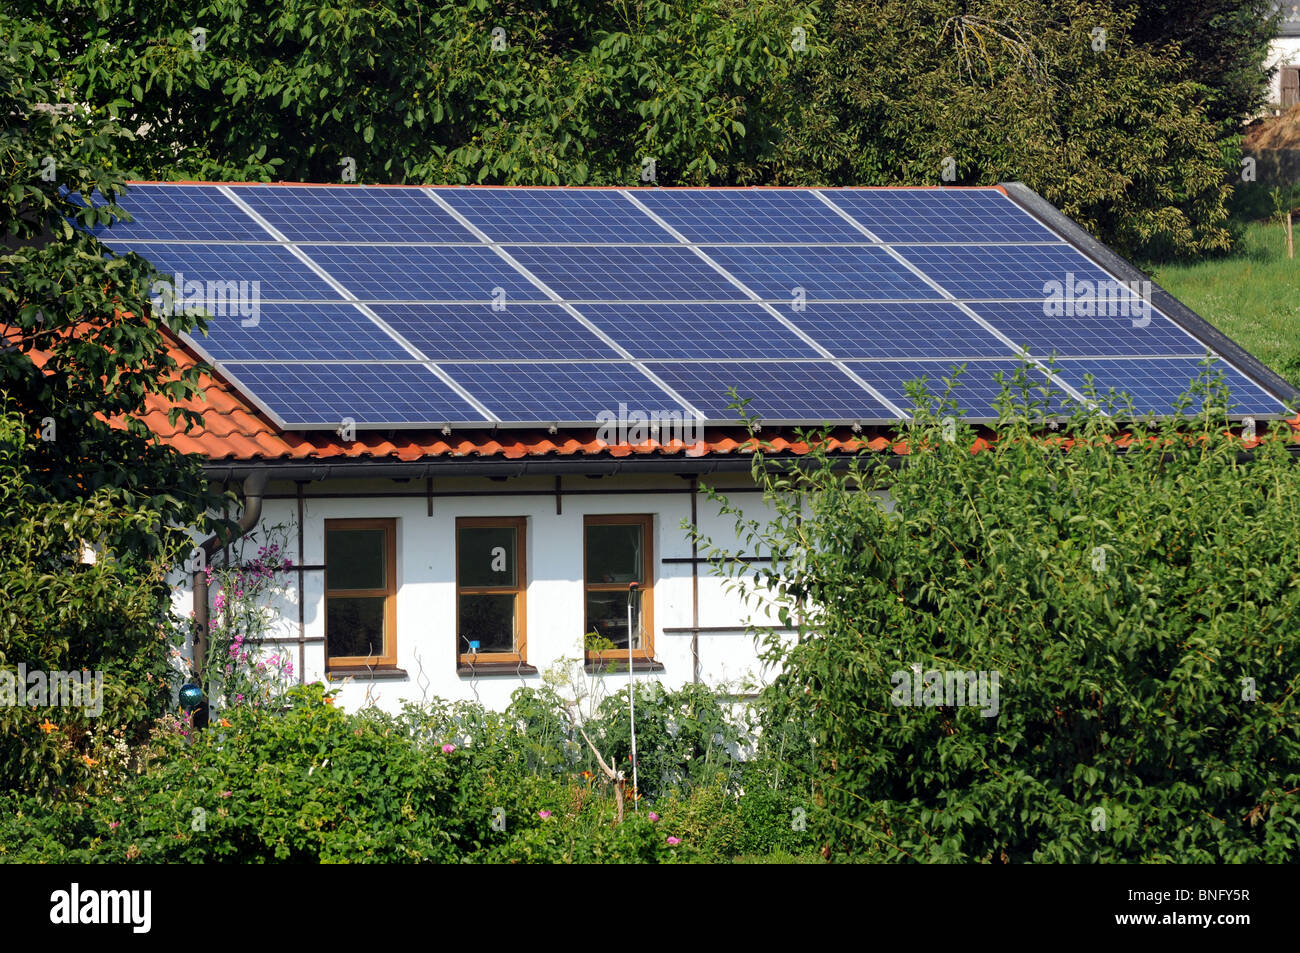 Garage Bilder Solar Panel On Roof Garage Stockfotos And Solar Panel On